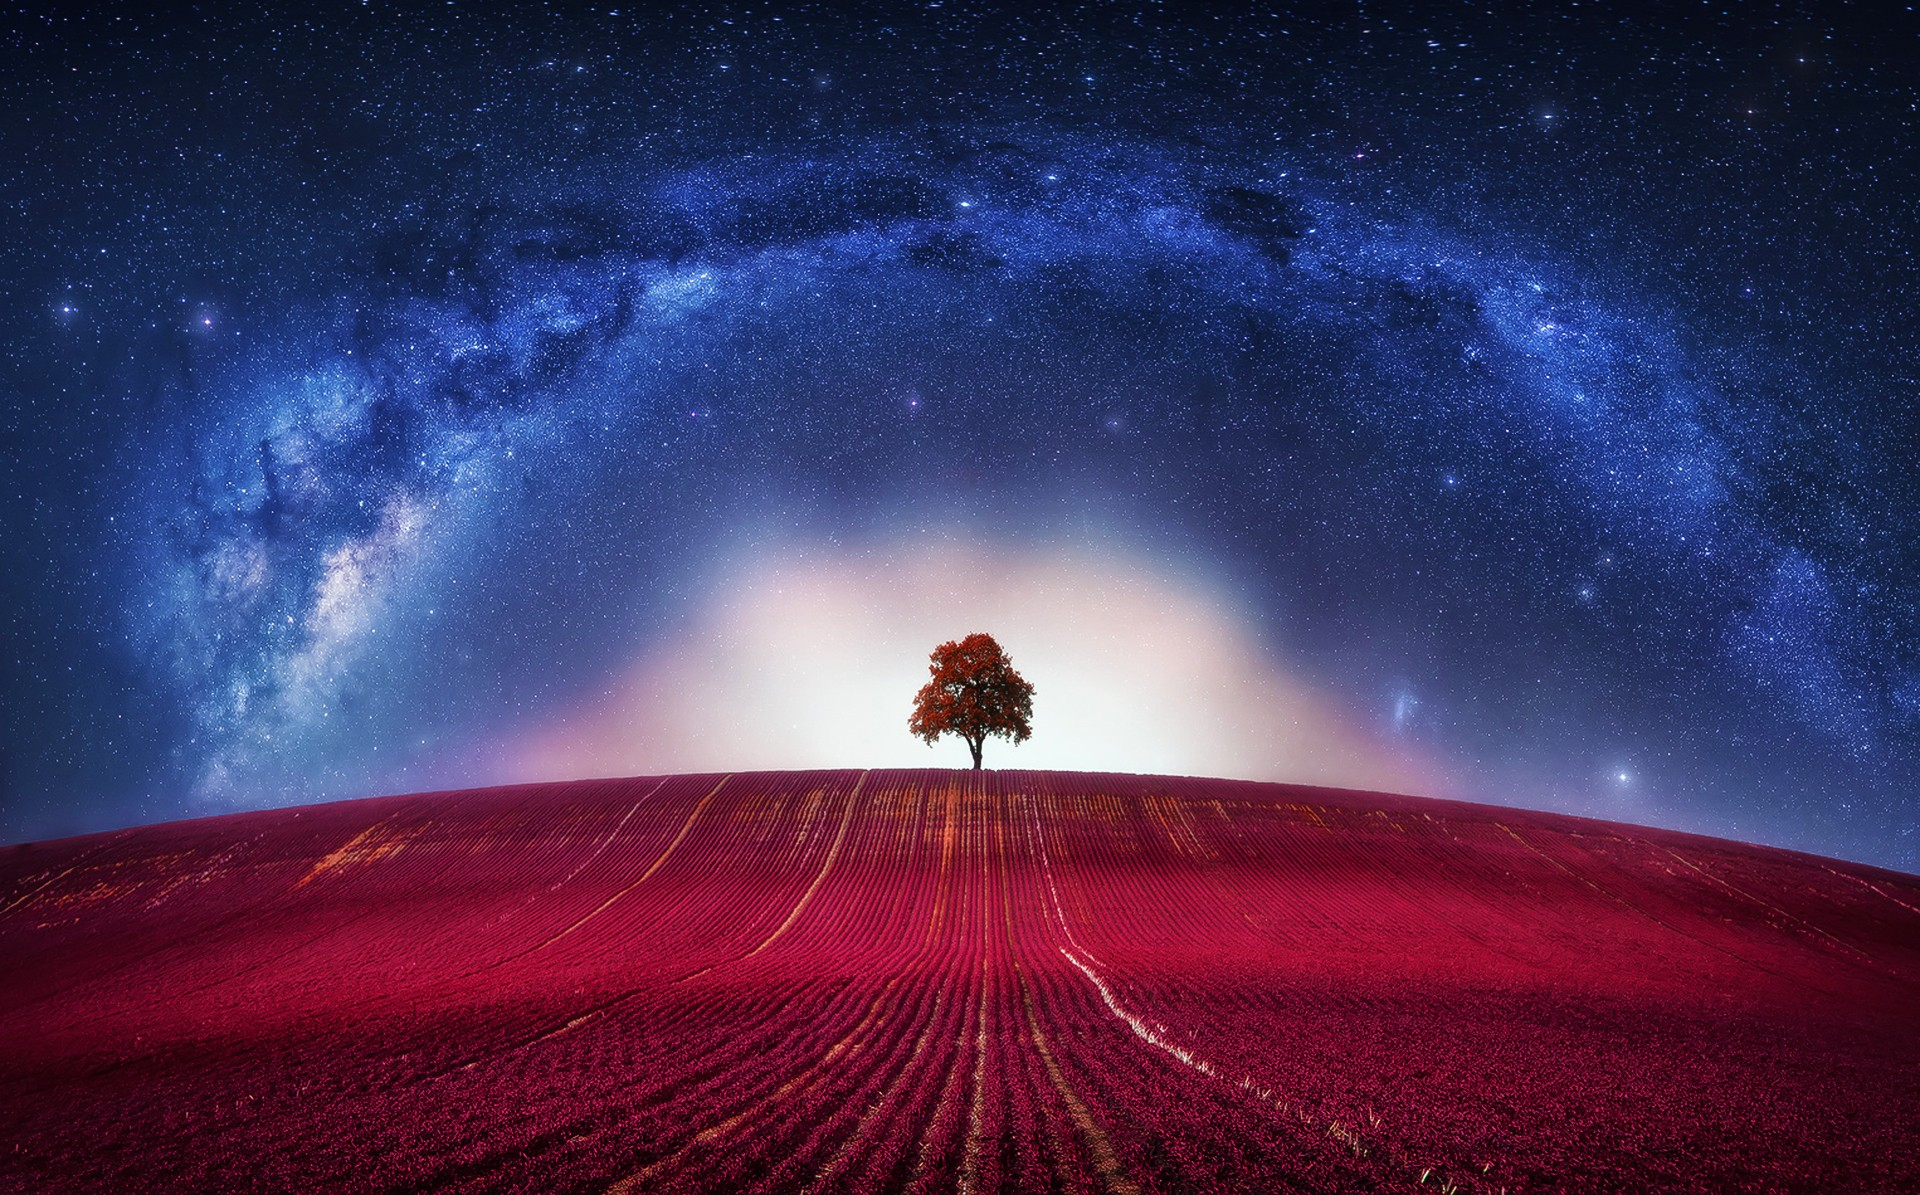 3d Hd Wallpapers For Laptop 1366x768 Universe Trees Digital Art Stars Wallpapers Hd